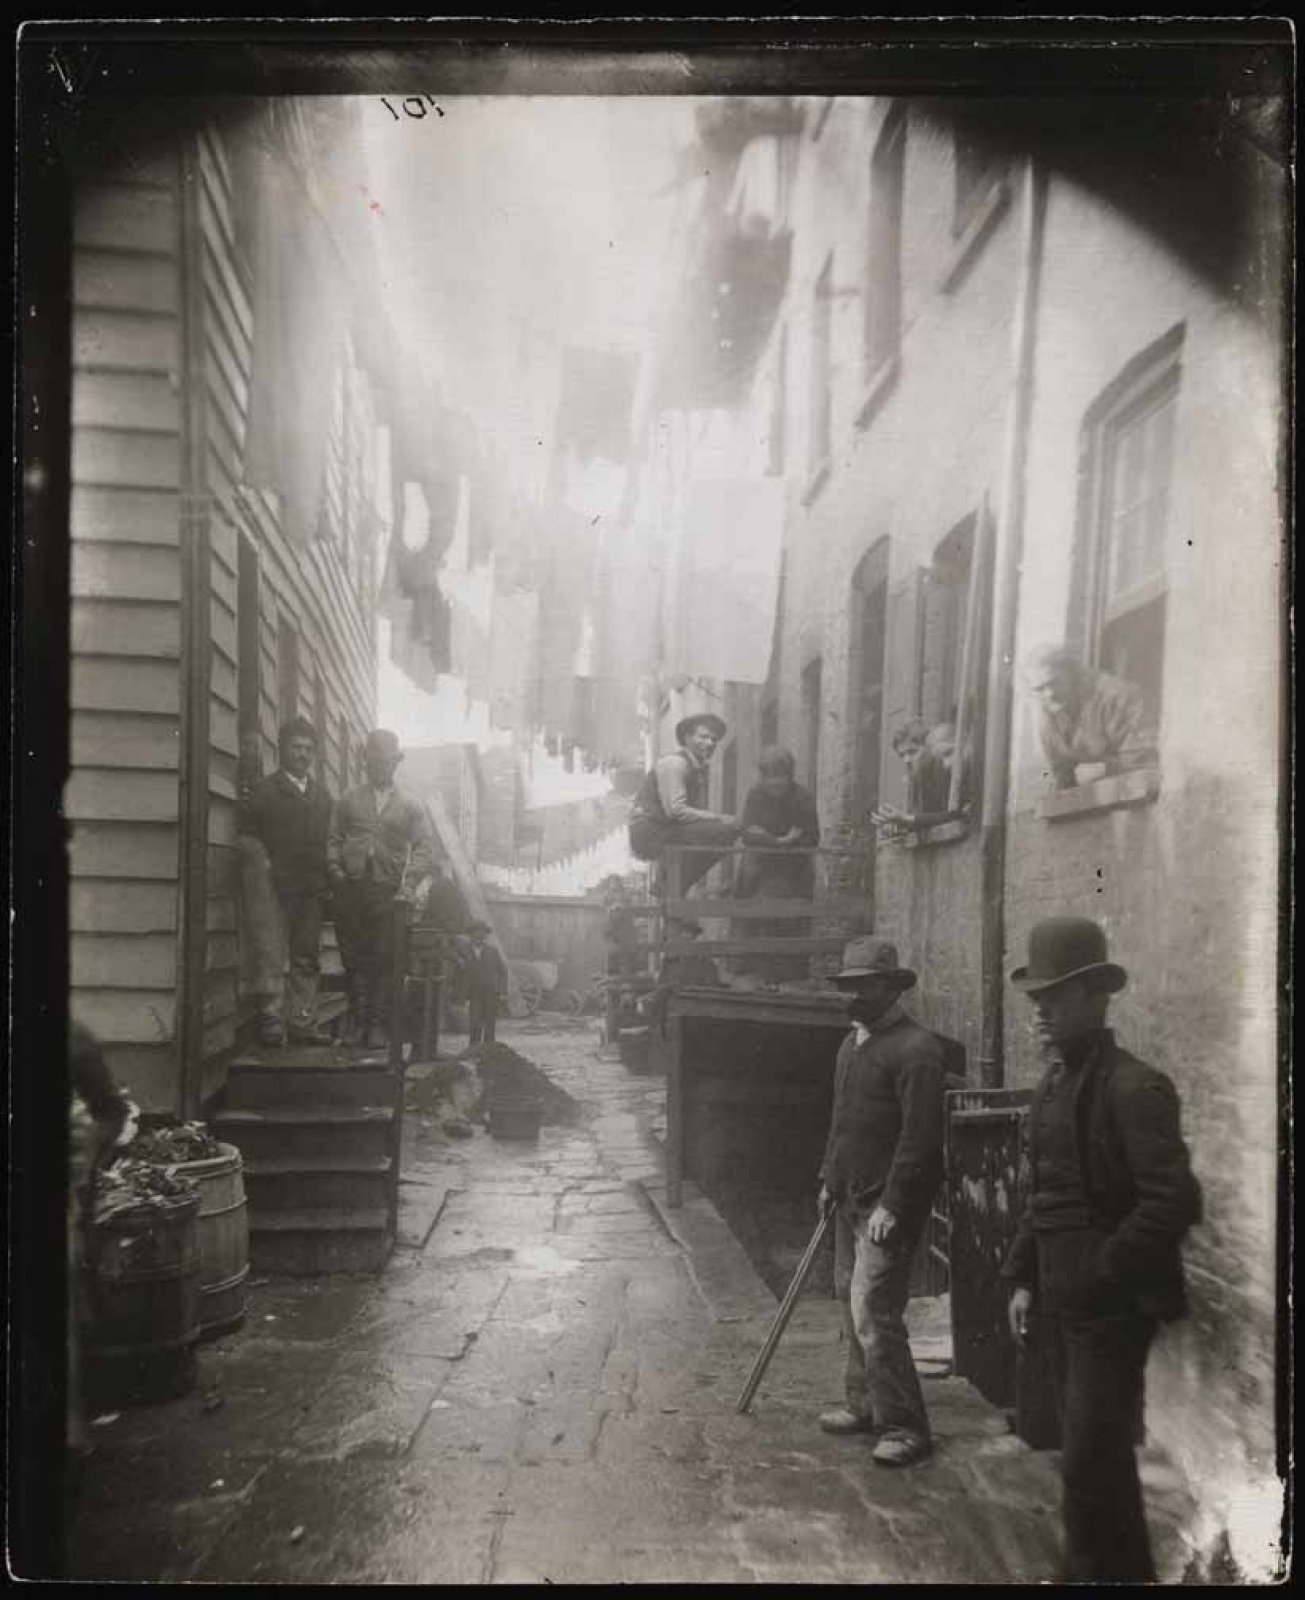 ´Bandits' Roost´, 1887-1888 / Jacob Riis / Museum of the City of New York